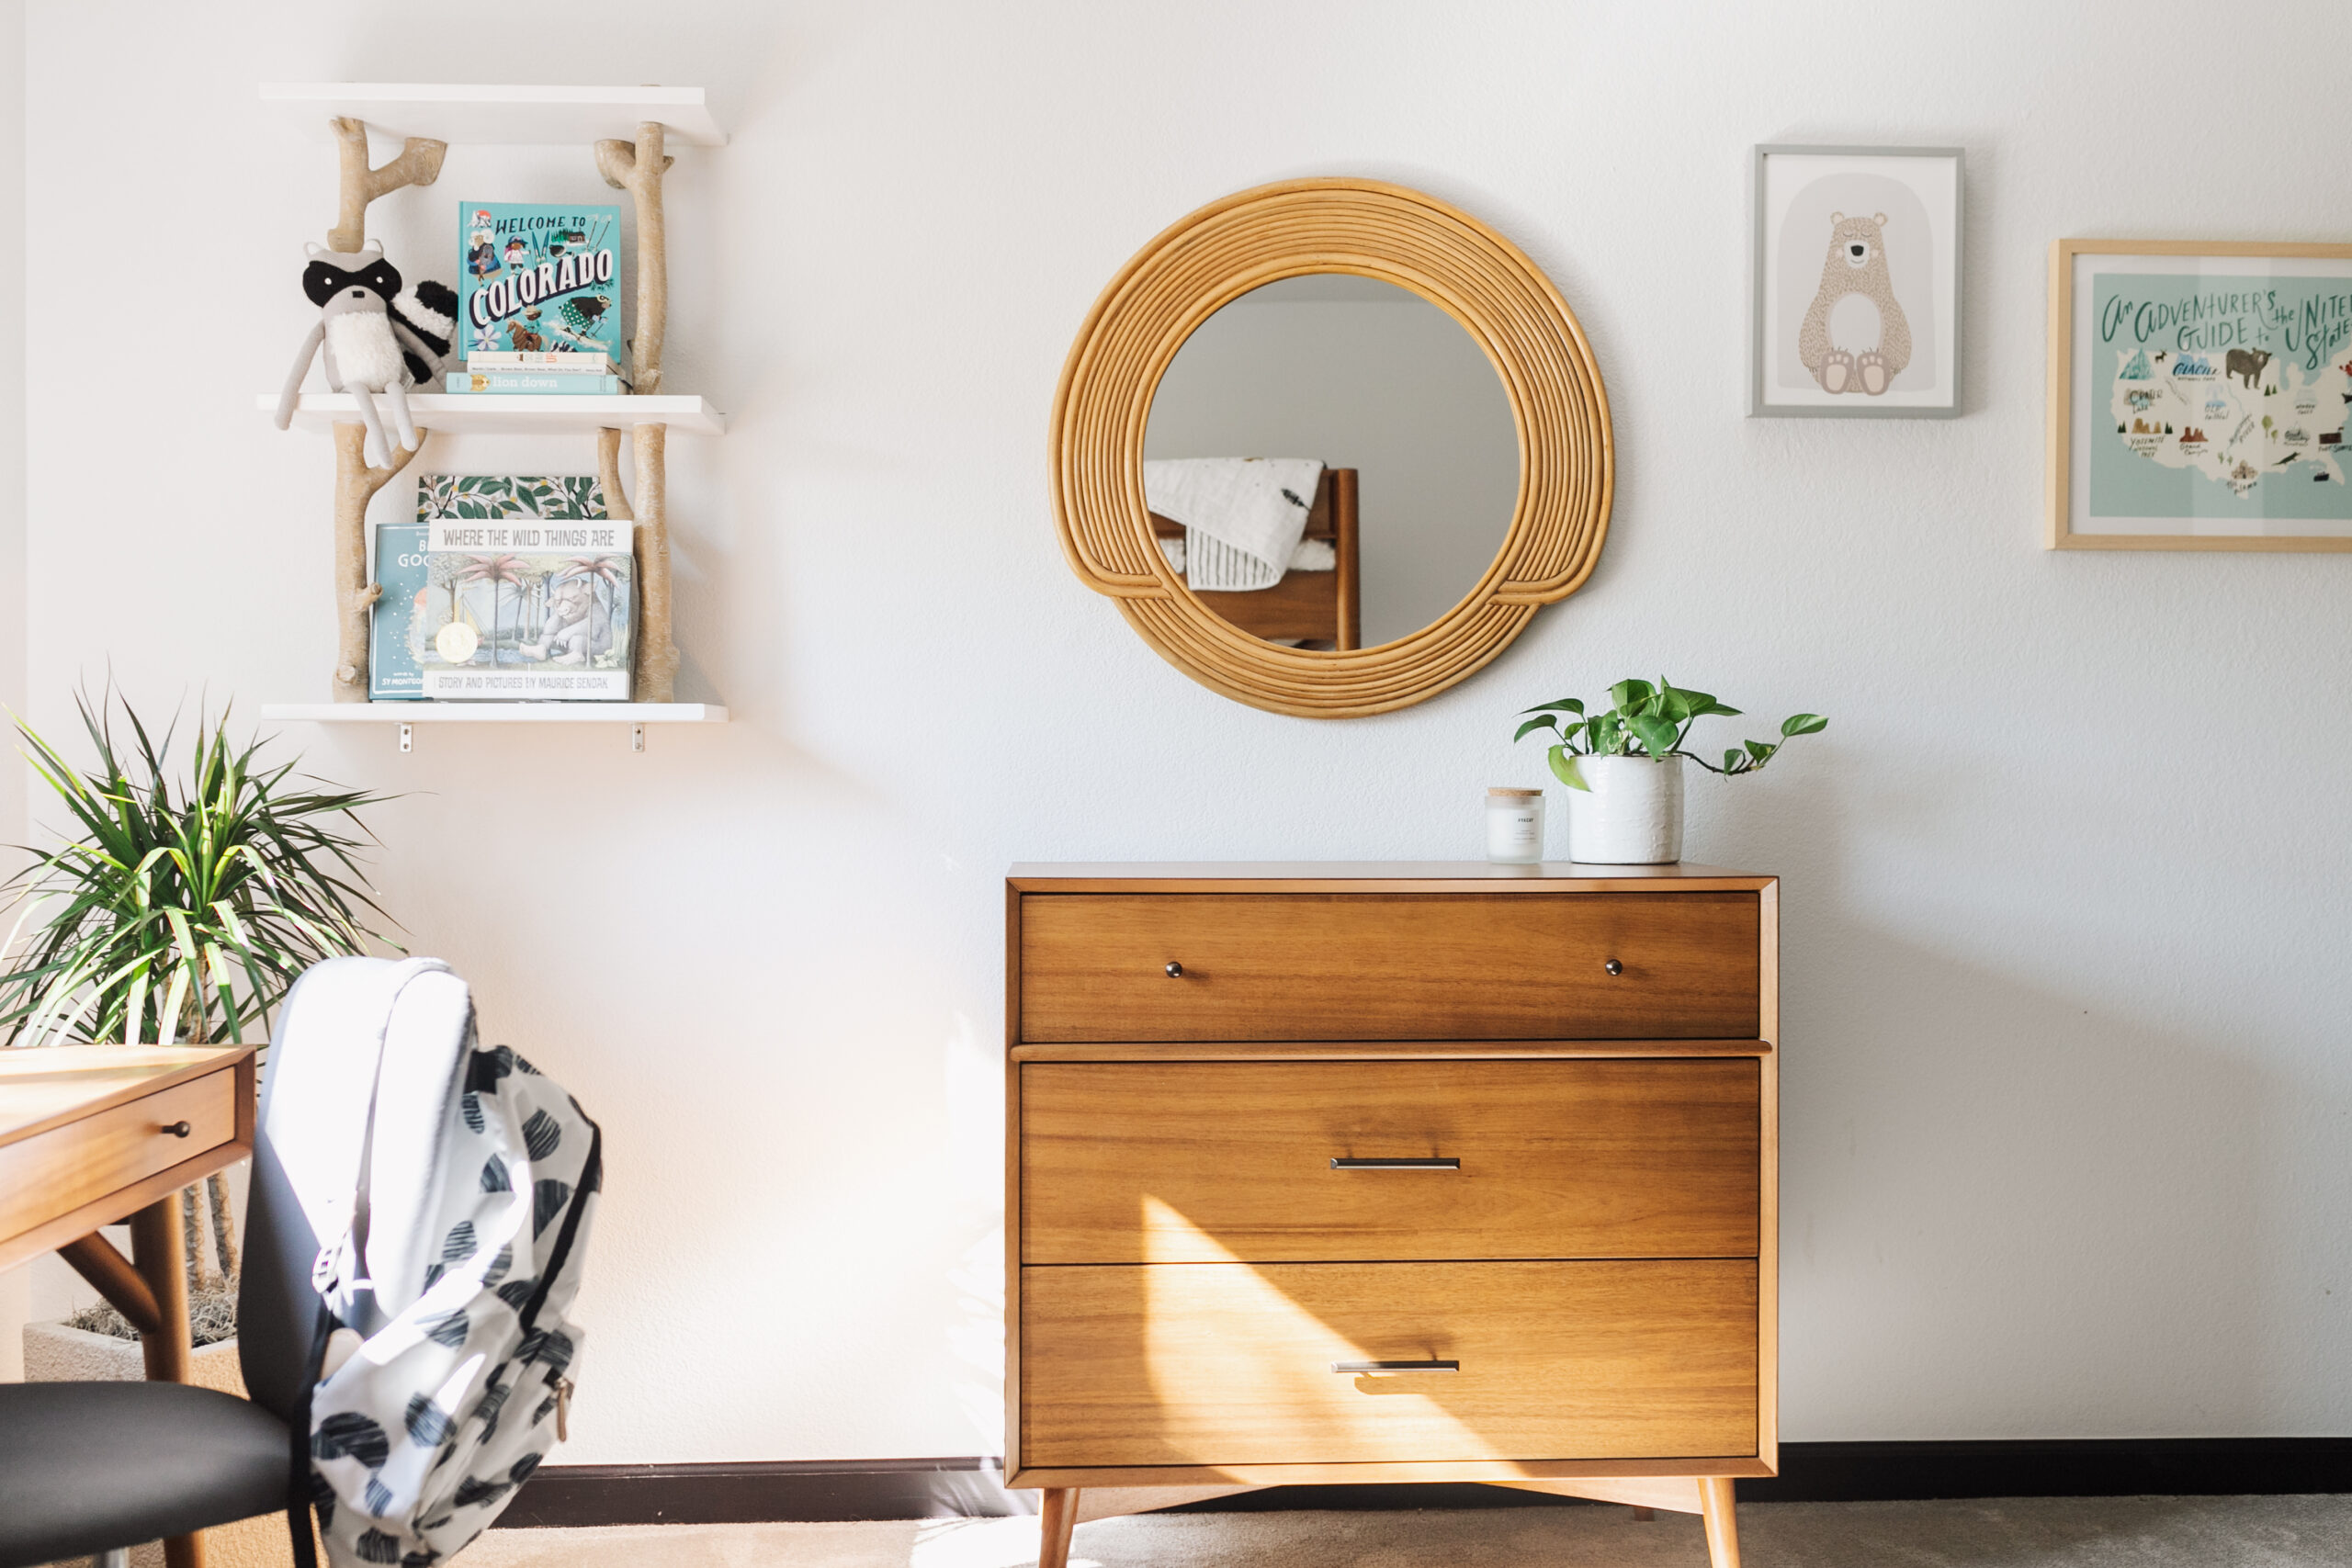 the wall opposite the bunk beds with the matching mid-century dresser and a few other mountain-y touches. #theldlhome #modernmountain #mountainhome #secondhome #kidsroom #guestroom